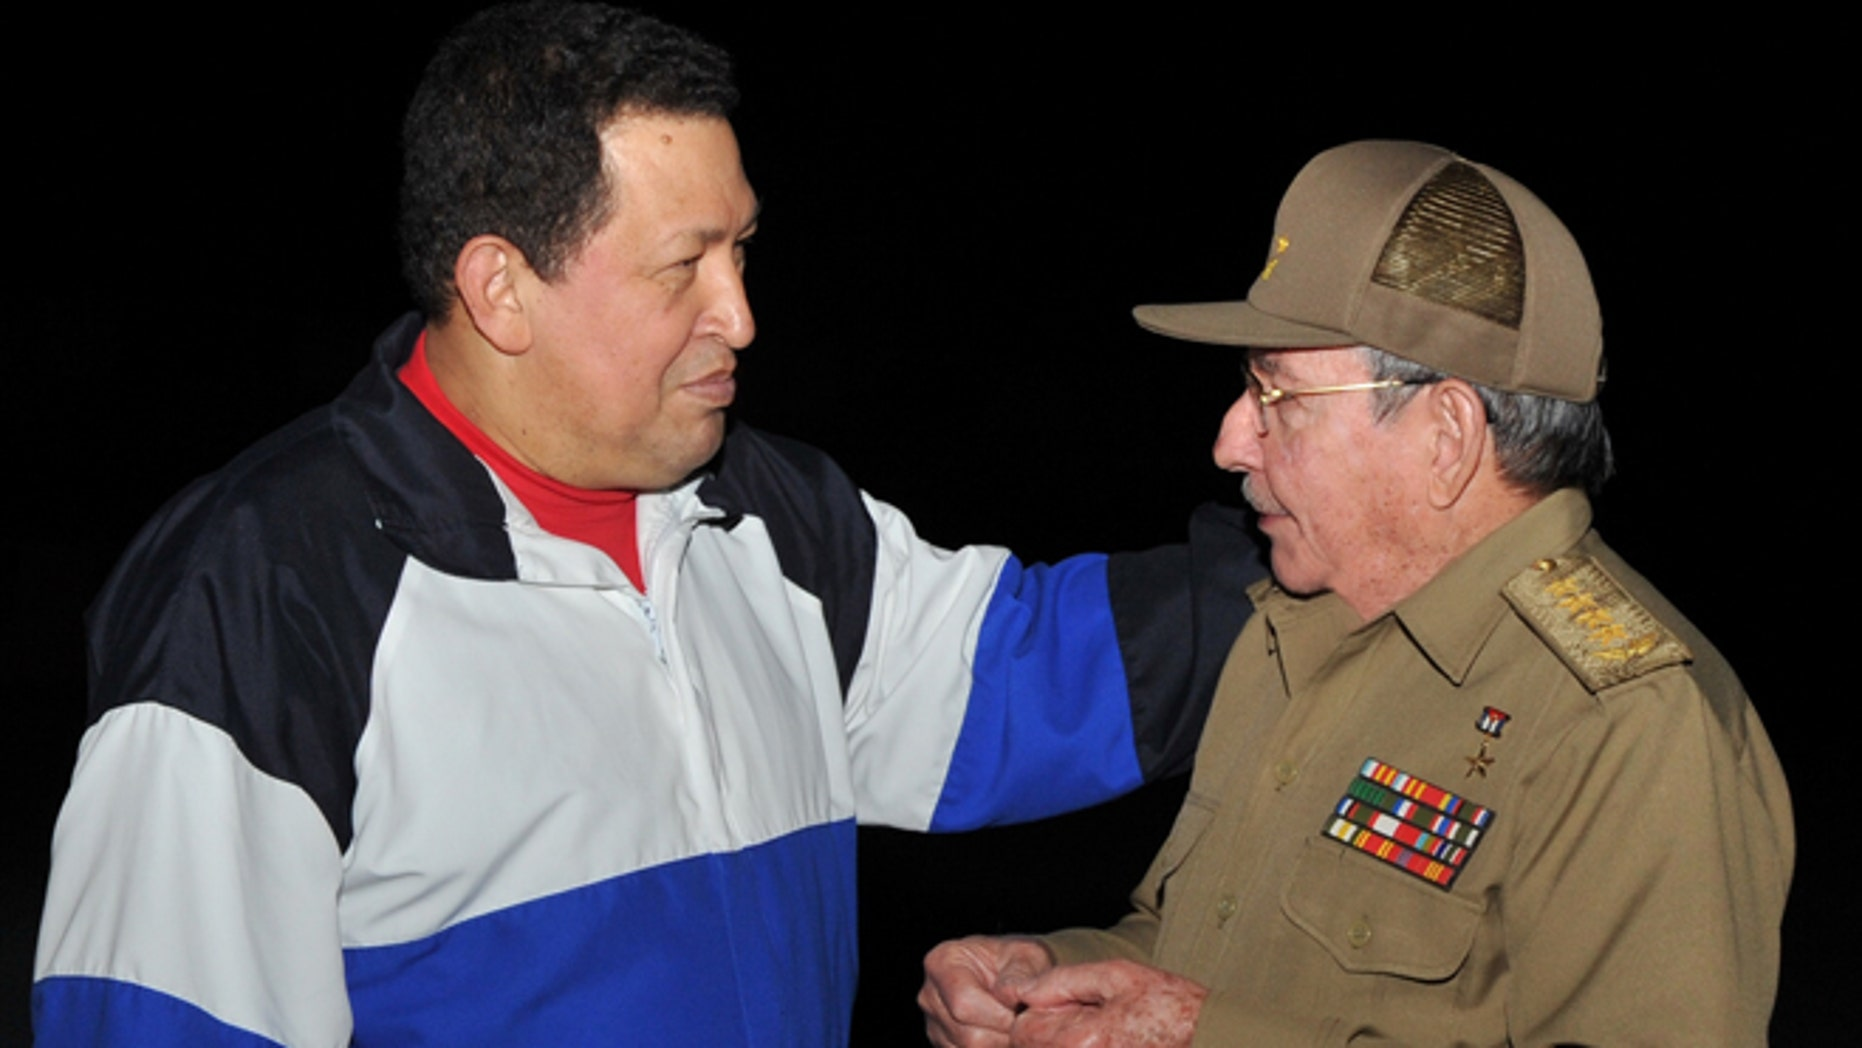 Dec. 10, 2012: In this picture released Tuesday, Dec. 11, 2012 by Cuba's state newspaper Granma, Cuba's President Raul Castro, right,  receives Venezuela's President Hugo Chavez at the Jose Marti International airport in Havana, Cuba.